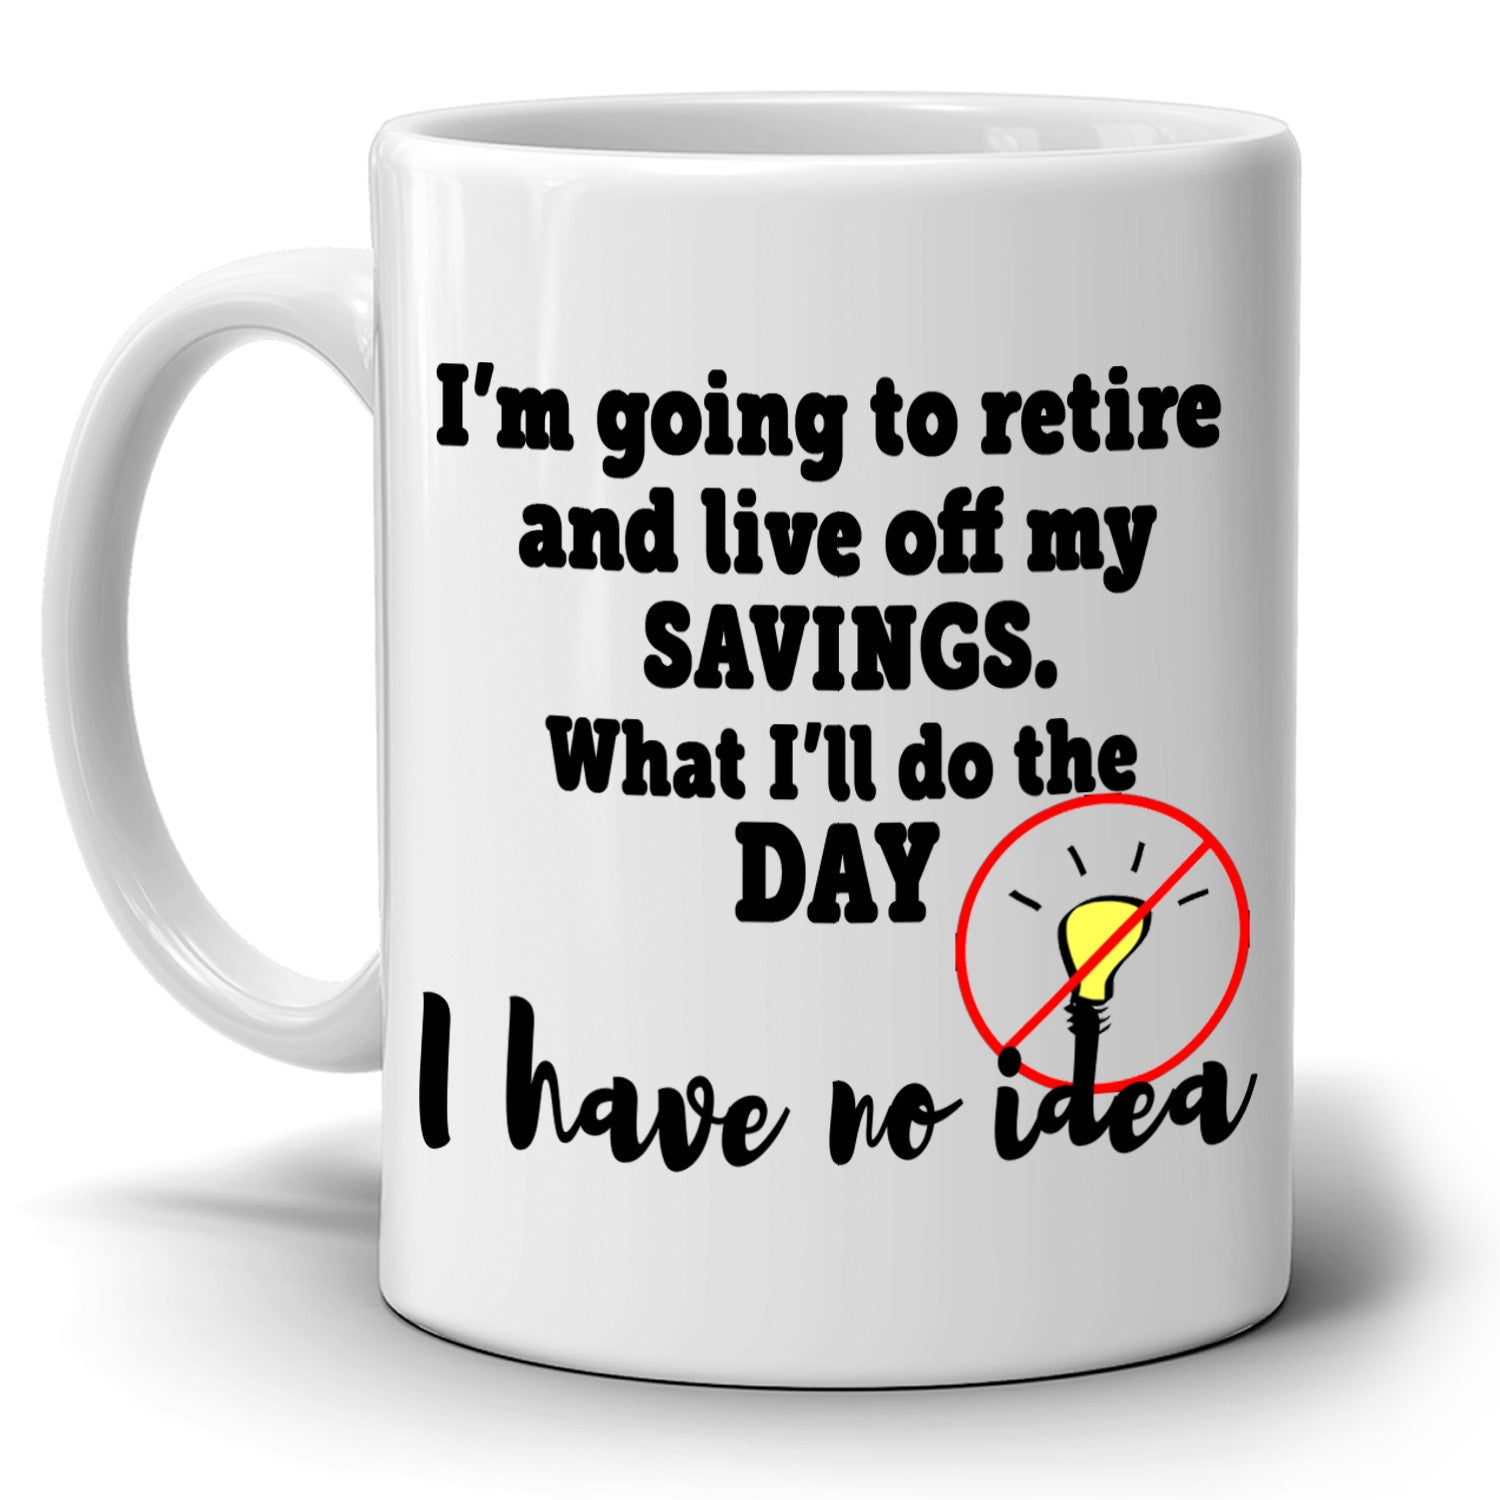 Funny Retirement Party Supplies Coffee Mug Perfect Retired Gag Gifts for Men and Women, Printed